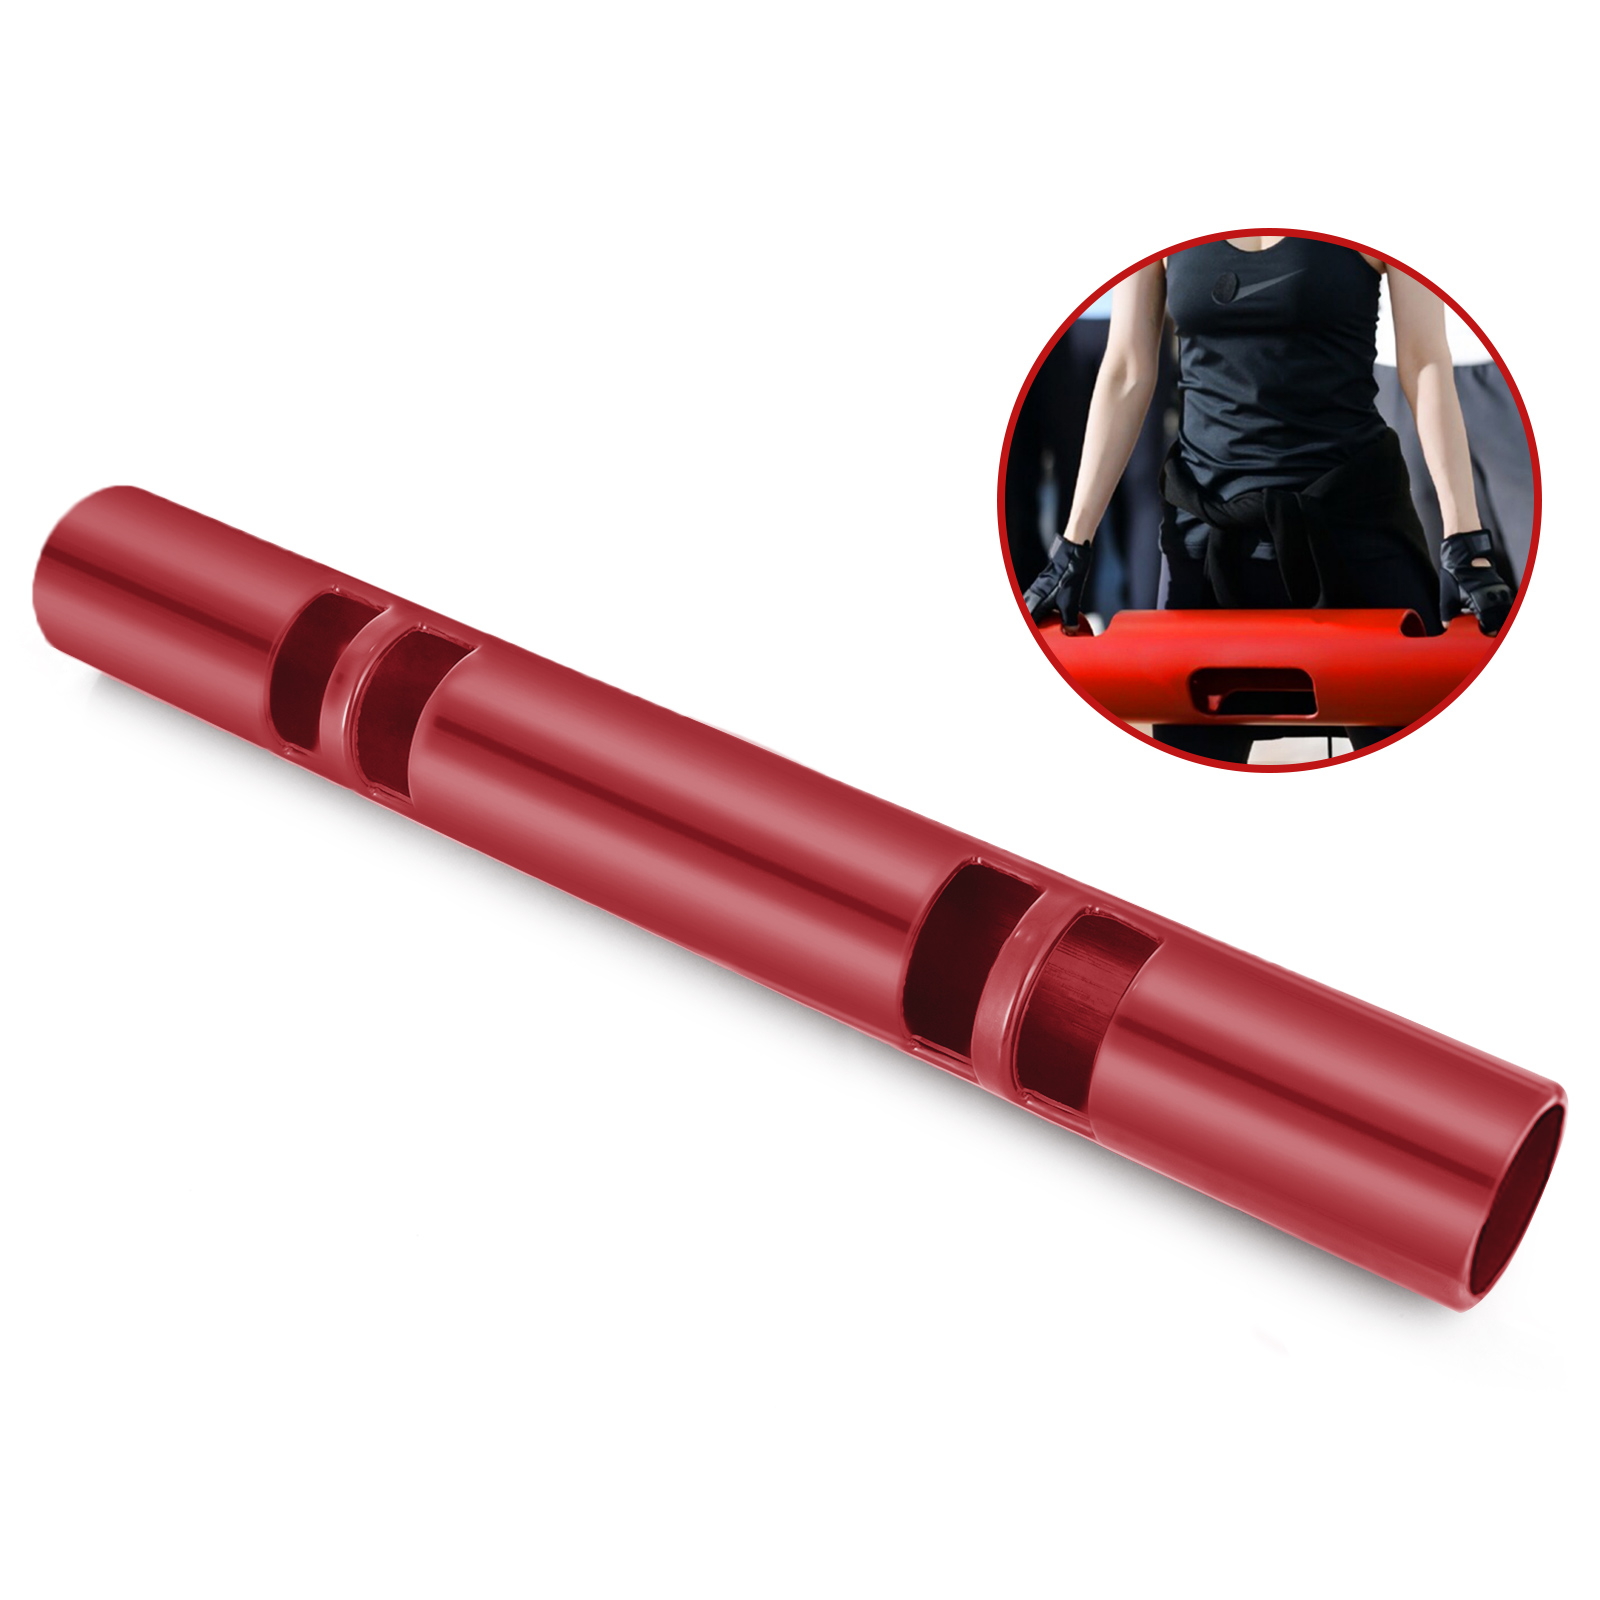 Vipr-Fitpro-Fitness-Tube-Loaded-Movement-Training-weightlifting-4-6-8-10-12-Kg thumbnail 71